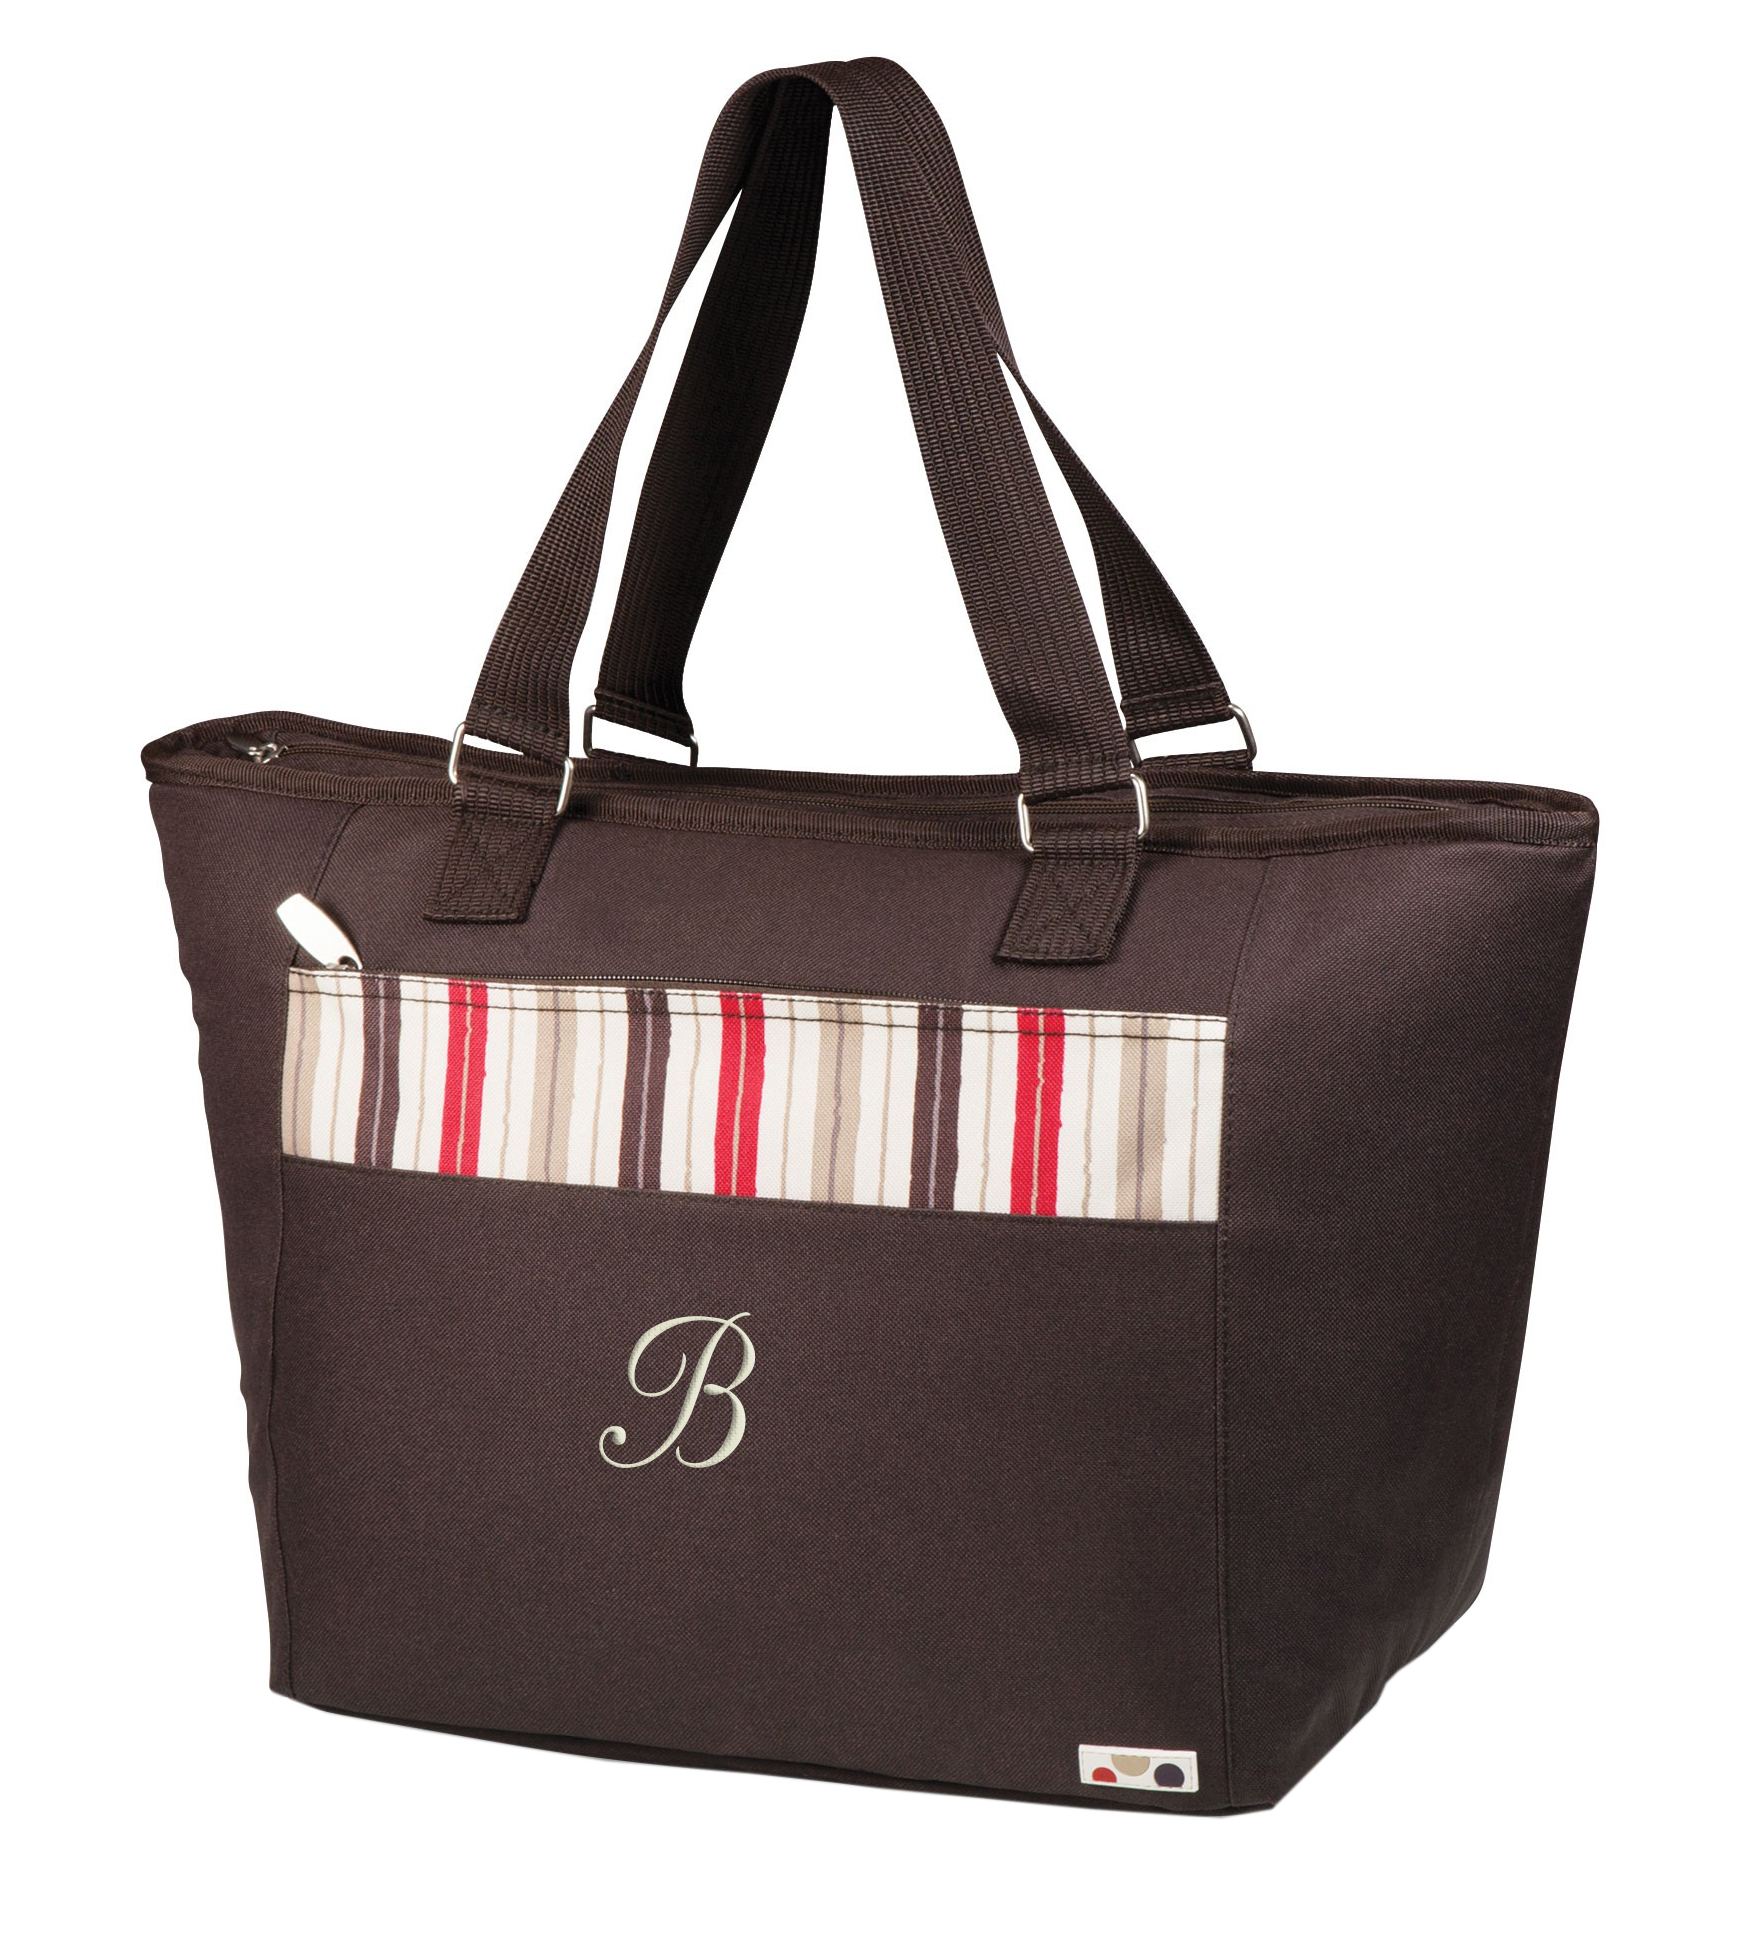 Insulated Cooler Picnic Chic Topanga Bag